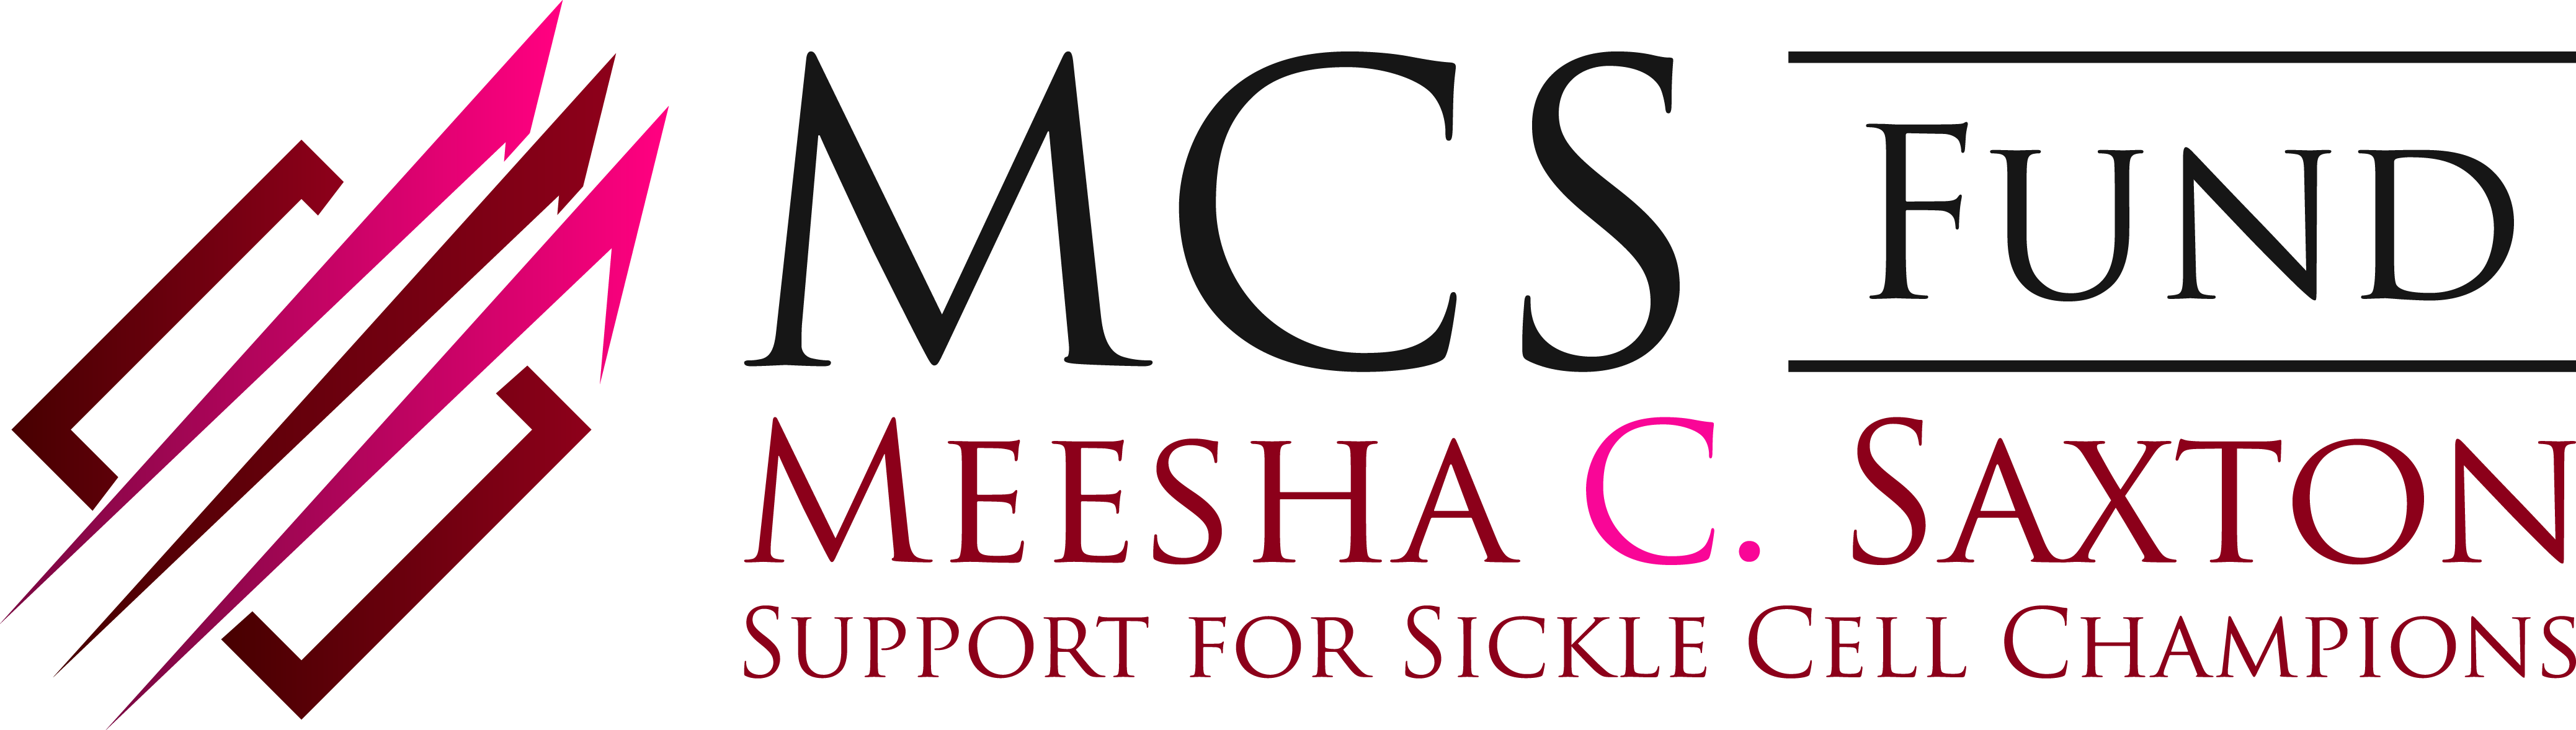 "Meesha C. Saxton Fund to hold ""Virtual GOSPEL EXTRAVAGANZA 2020"" on WORLD SICKLE CELL DAY"